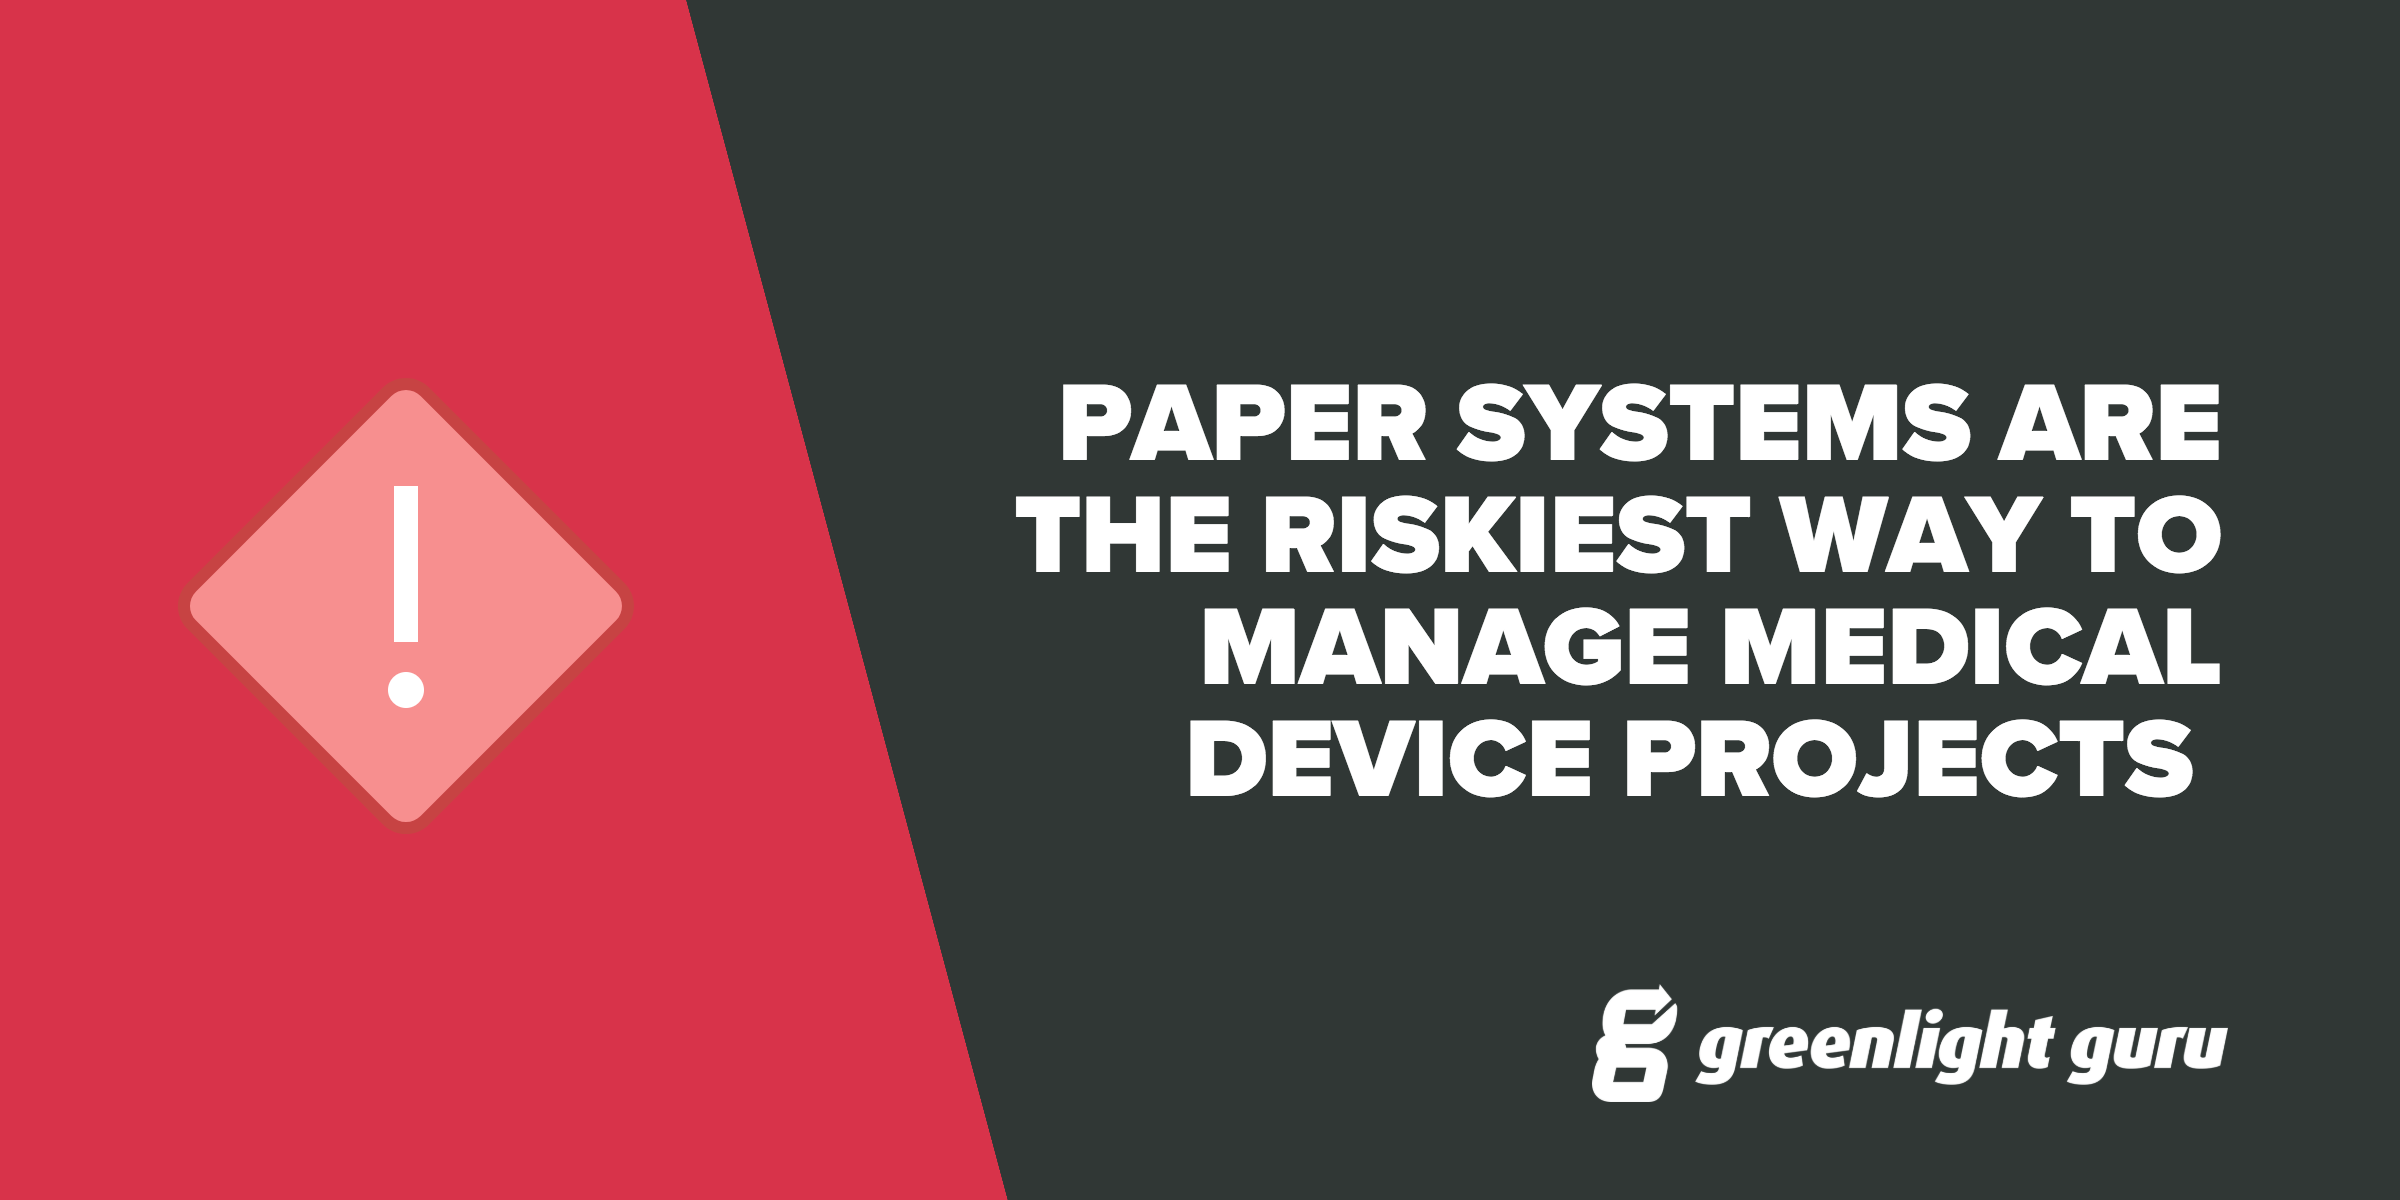 paper systems riskiets way to manage